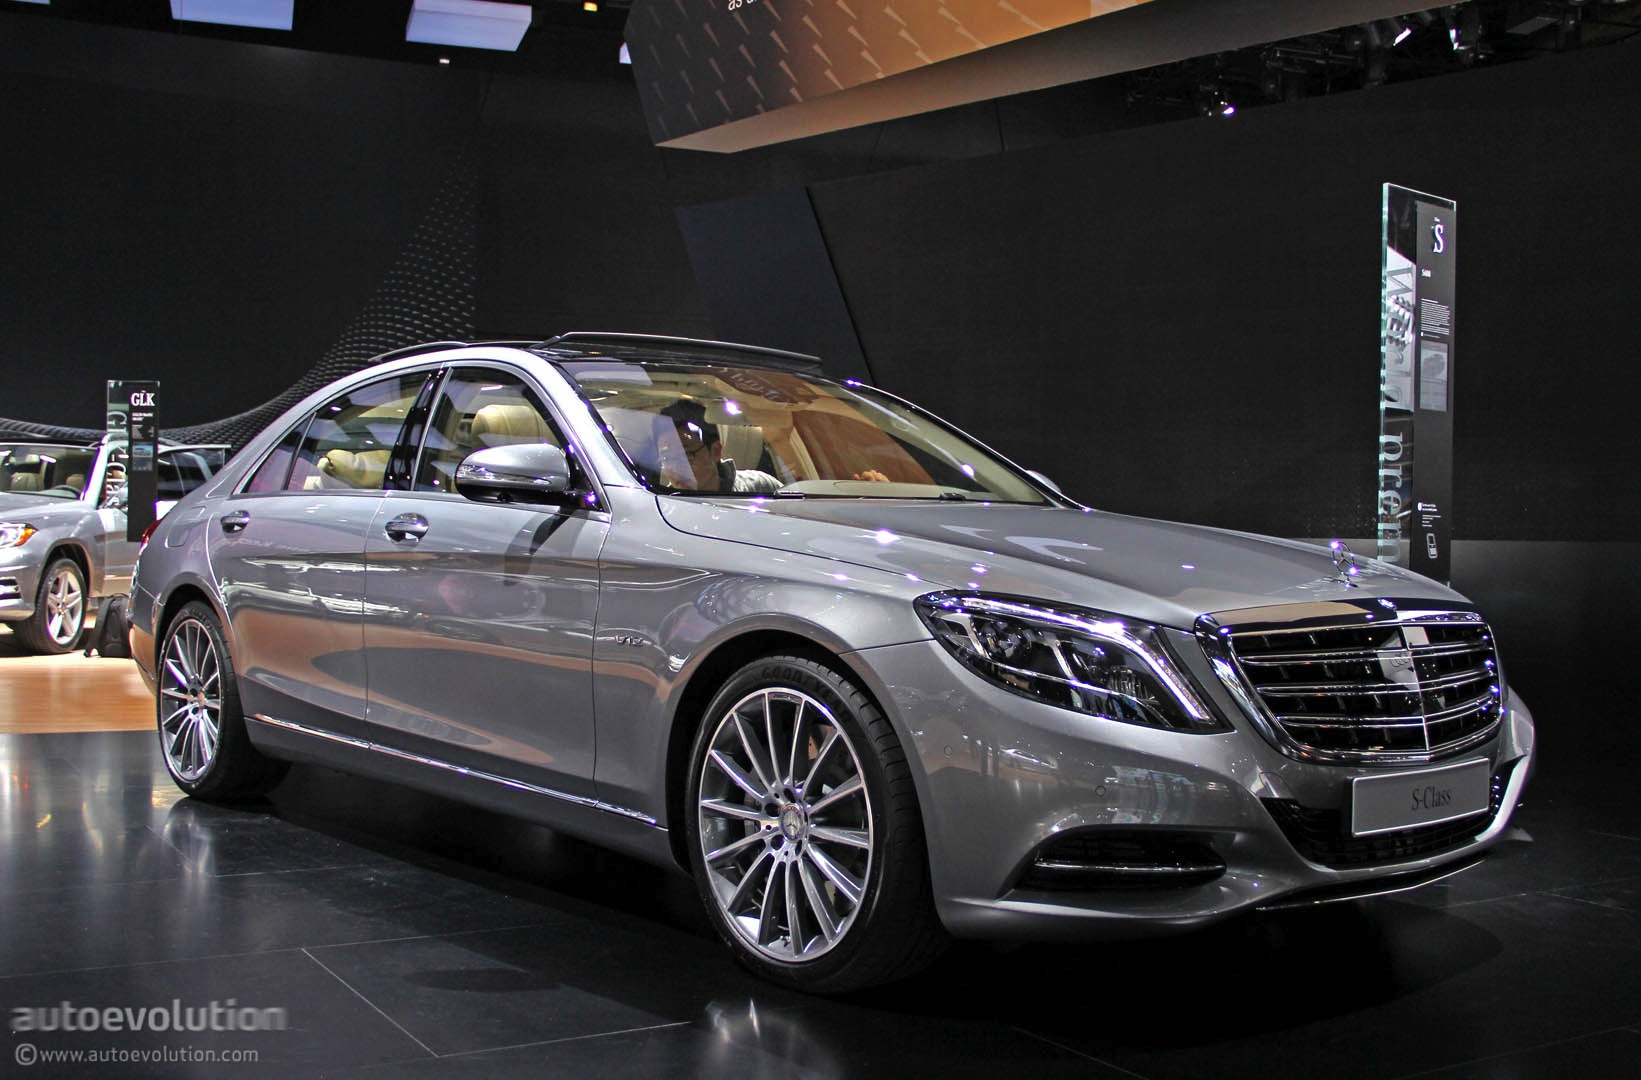 v12 powered 2015 mercedes s600 leaked specced and videoed autoevolution. Black Bedroom Furniture Sets. Home Design Ideas